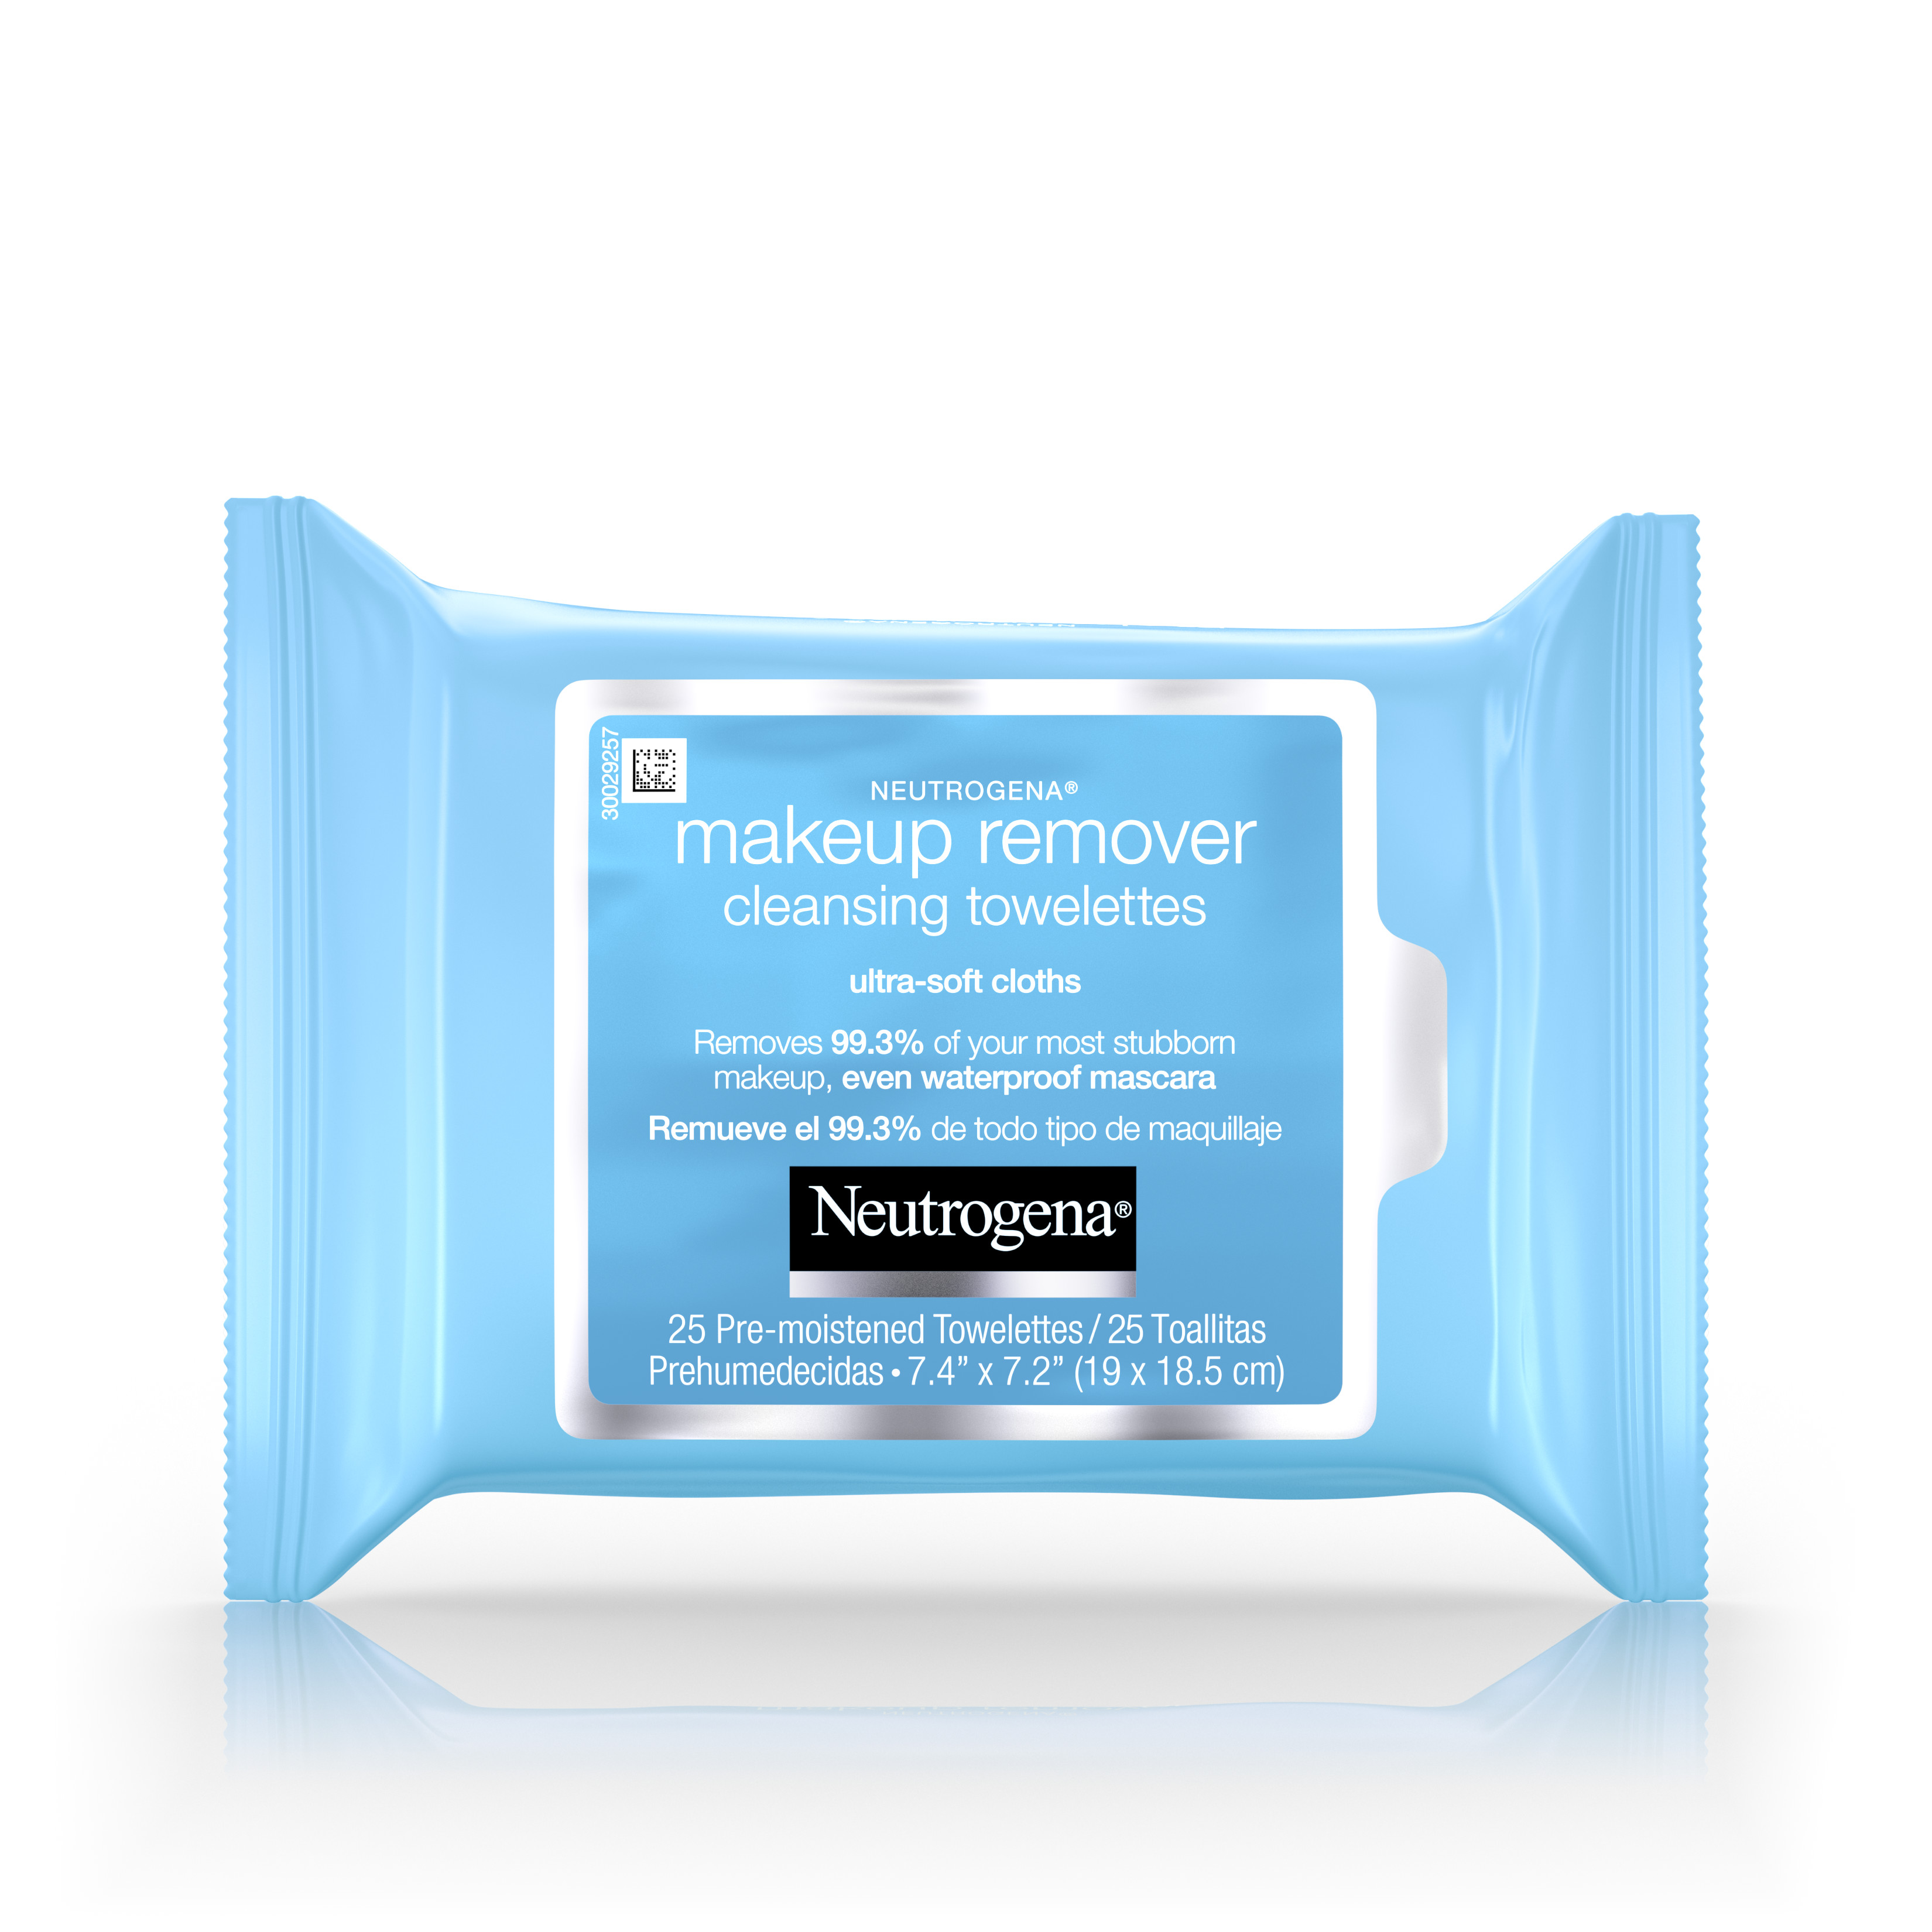 Neutrogena Makeup Remover Cleansing Towelettes Refill Pack, 25 Count - Walmart.com